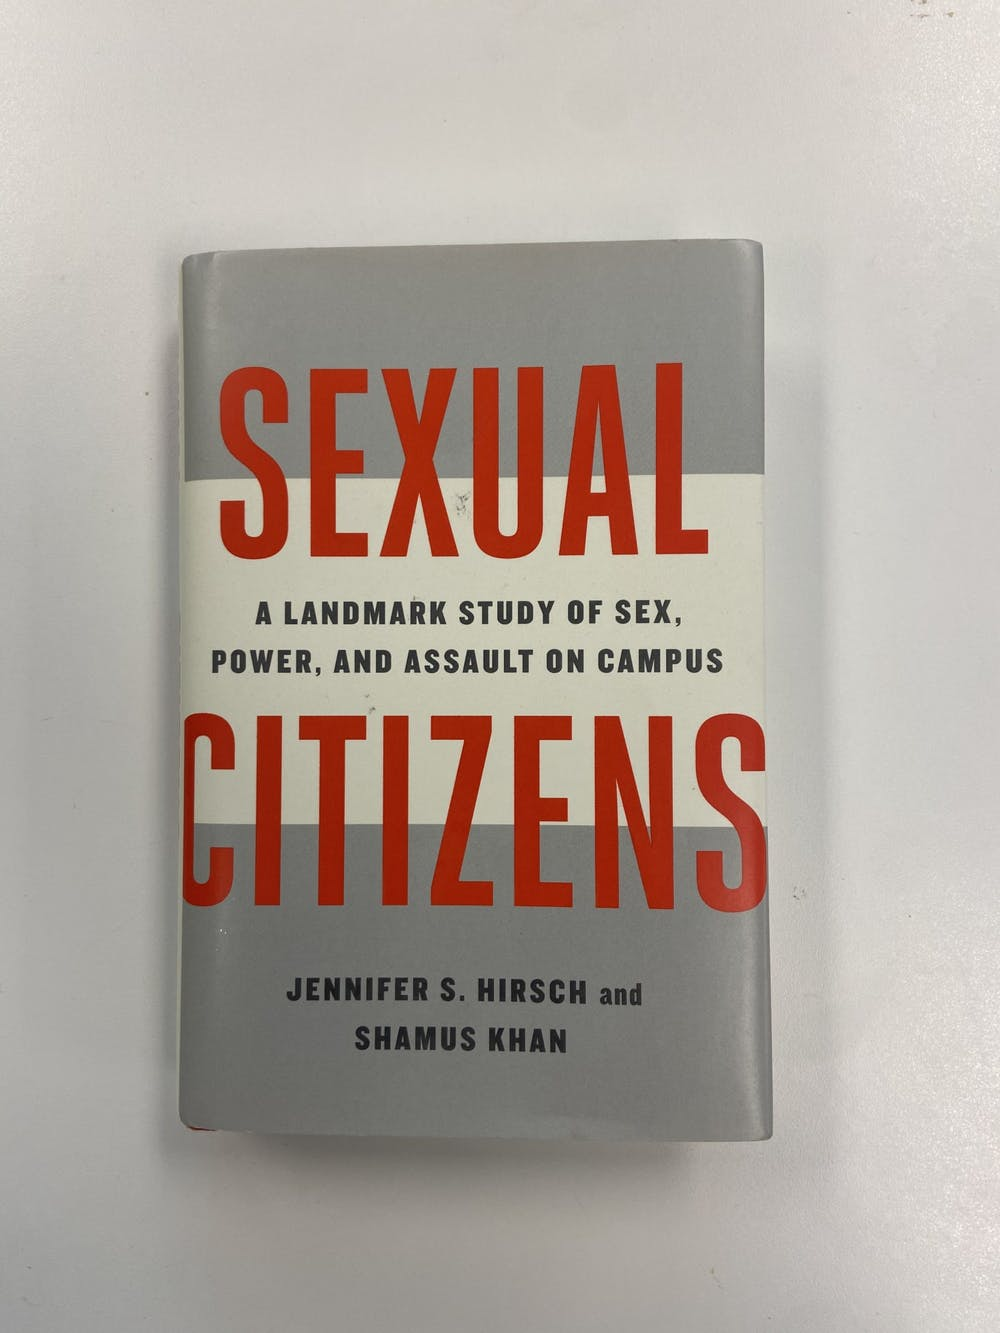 Hirsch and Khan cover three concepts in the book: sexual projects, sexual geographies and sexual citizenship and how they relate to college students.